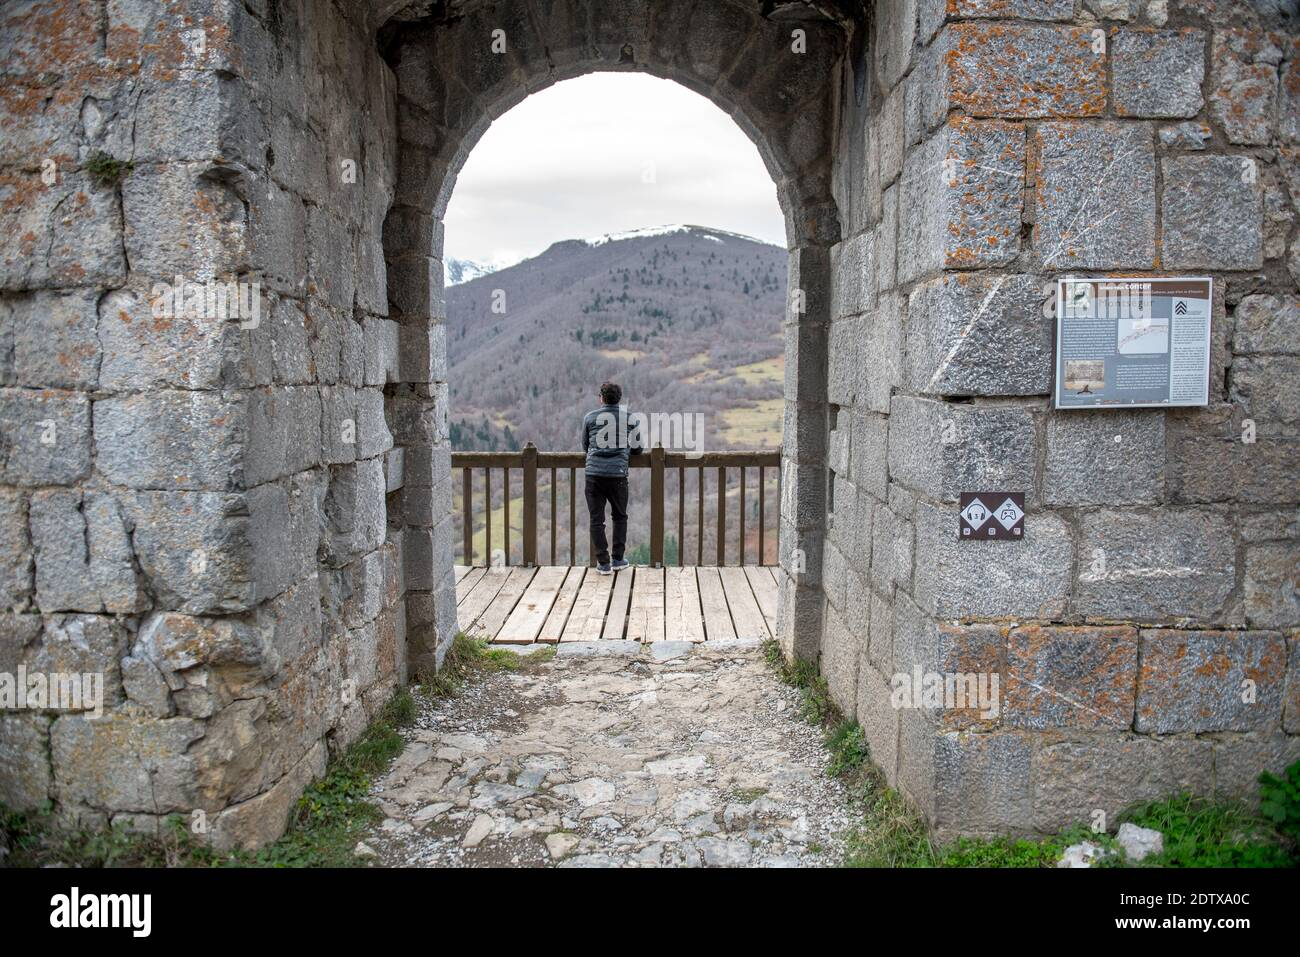 Montsegur, Aringe, France: 2020 from December 20: Men in Cathar castle of Montsegur in Ariege, Occitanie in south of France in winter 2020 Stock Photo